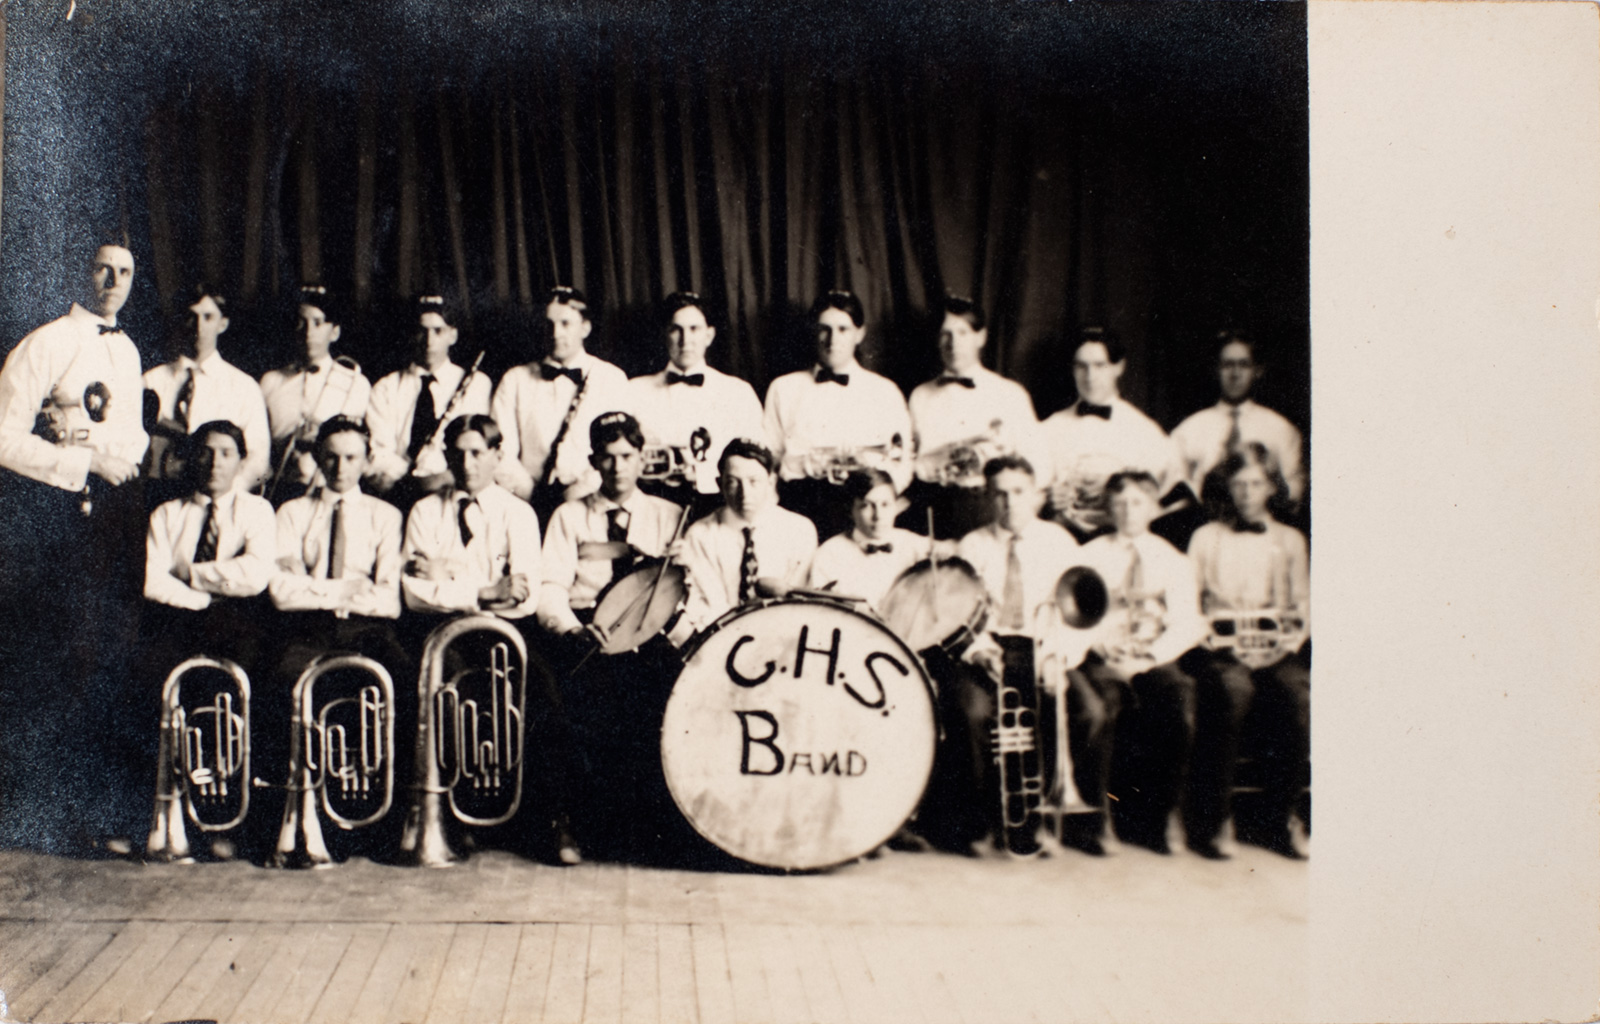 Chester High School Band 1910 - Postcard Image